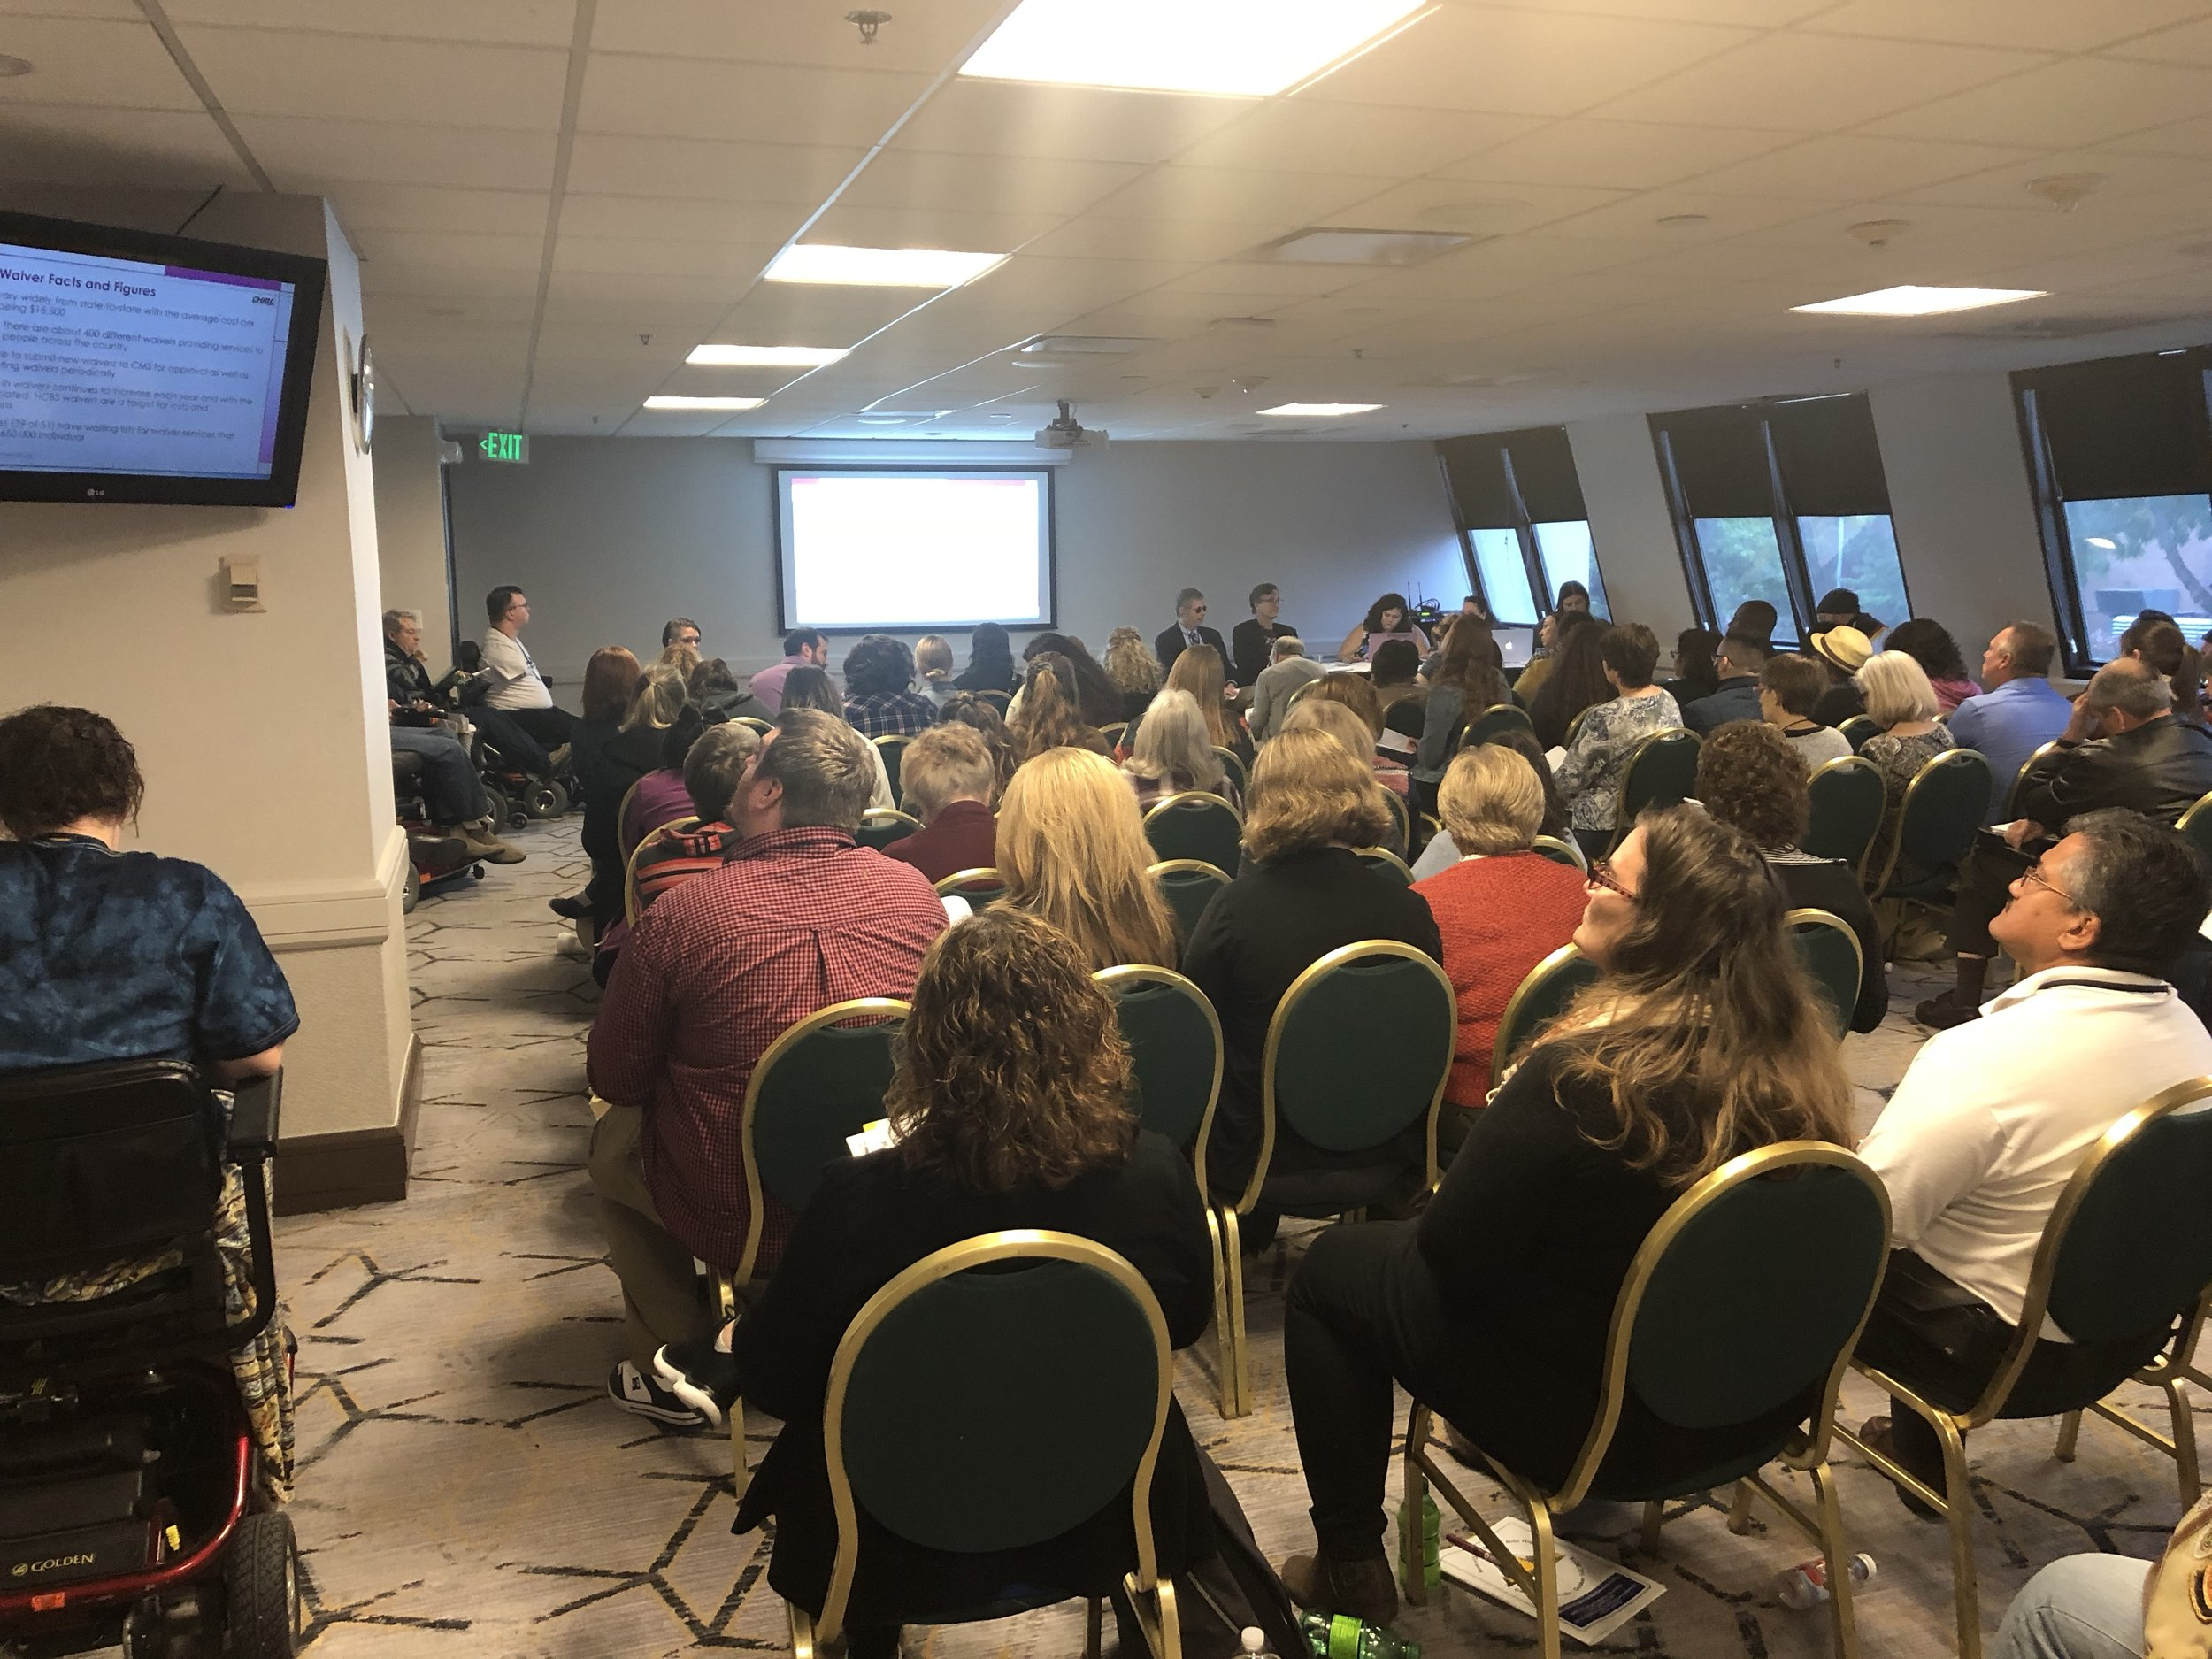 Picture: CHRIL presentation at the APRIL Conference. Picture is of a room with audience members looking toward the front of the room as CHRIL presenters speak.